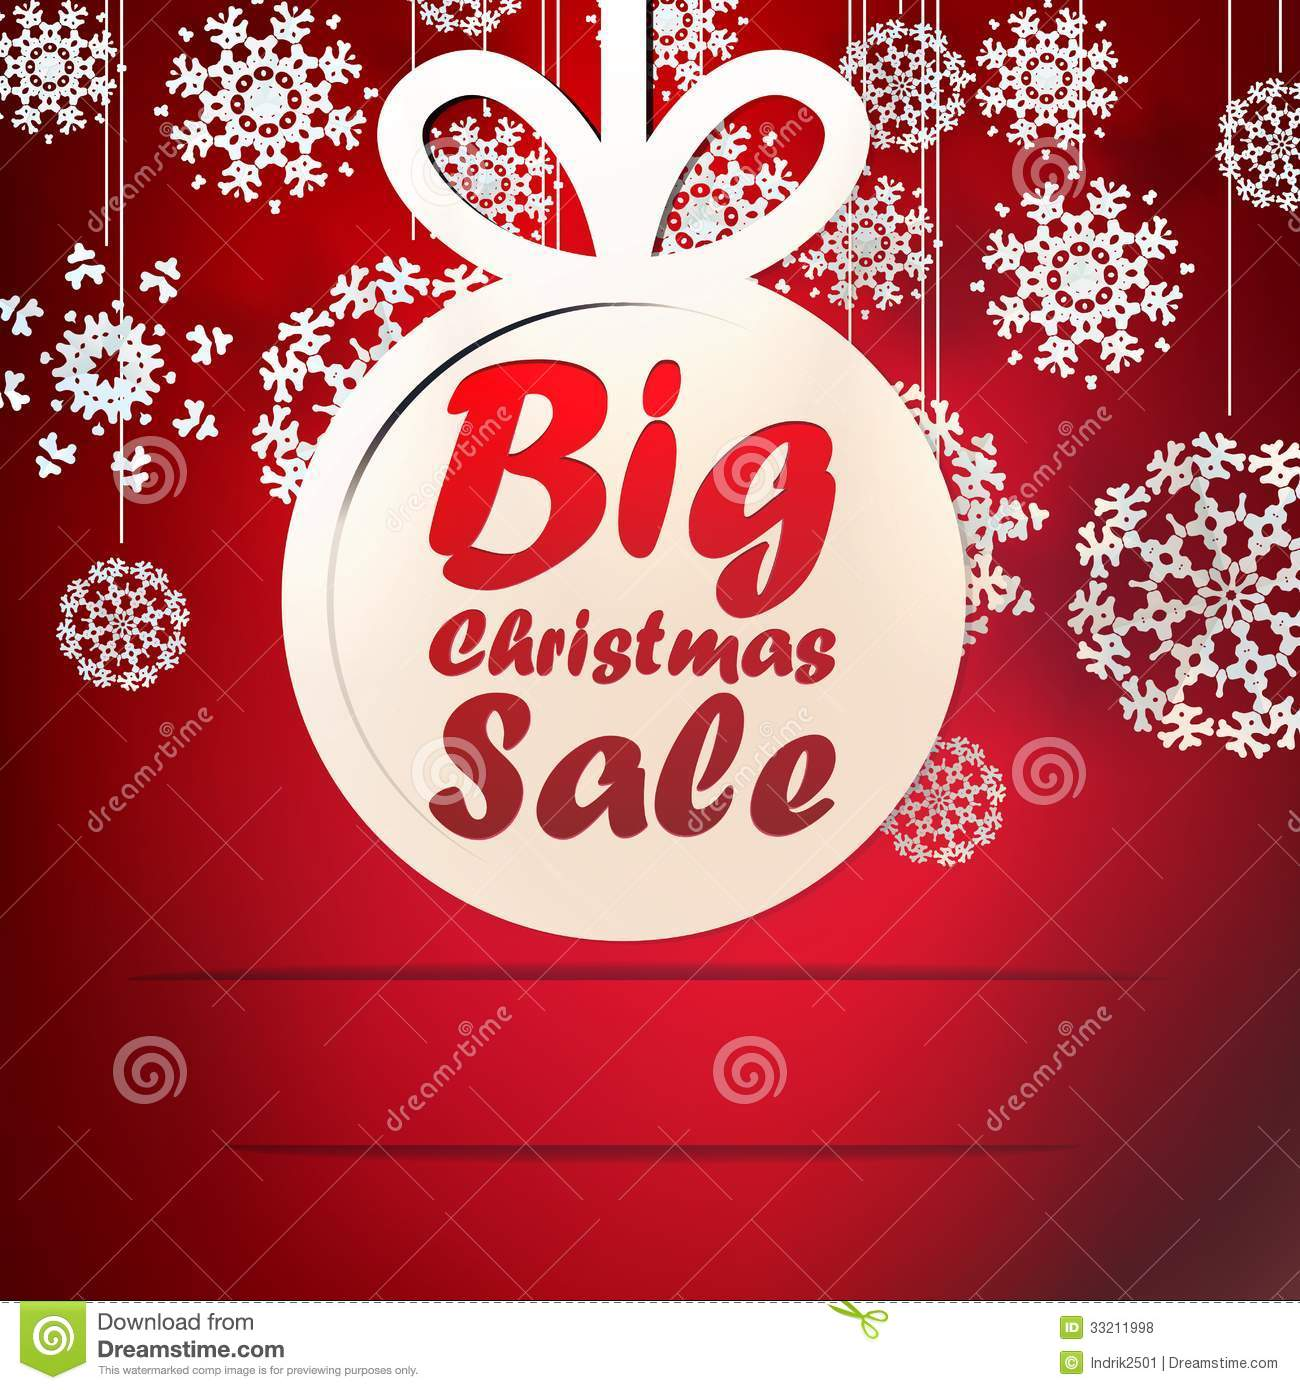 Christmas Big Sale template